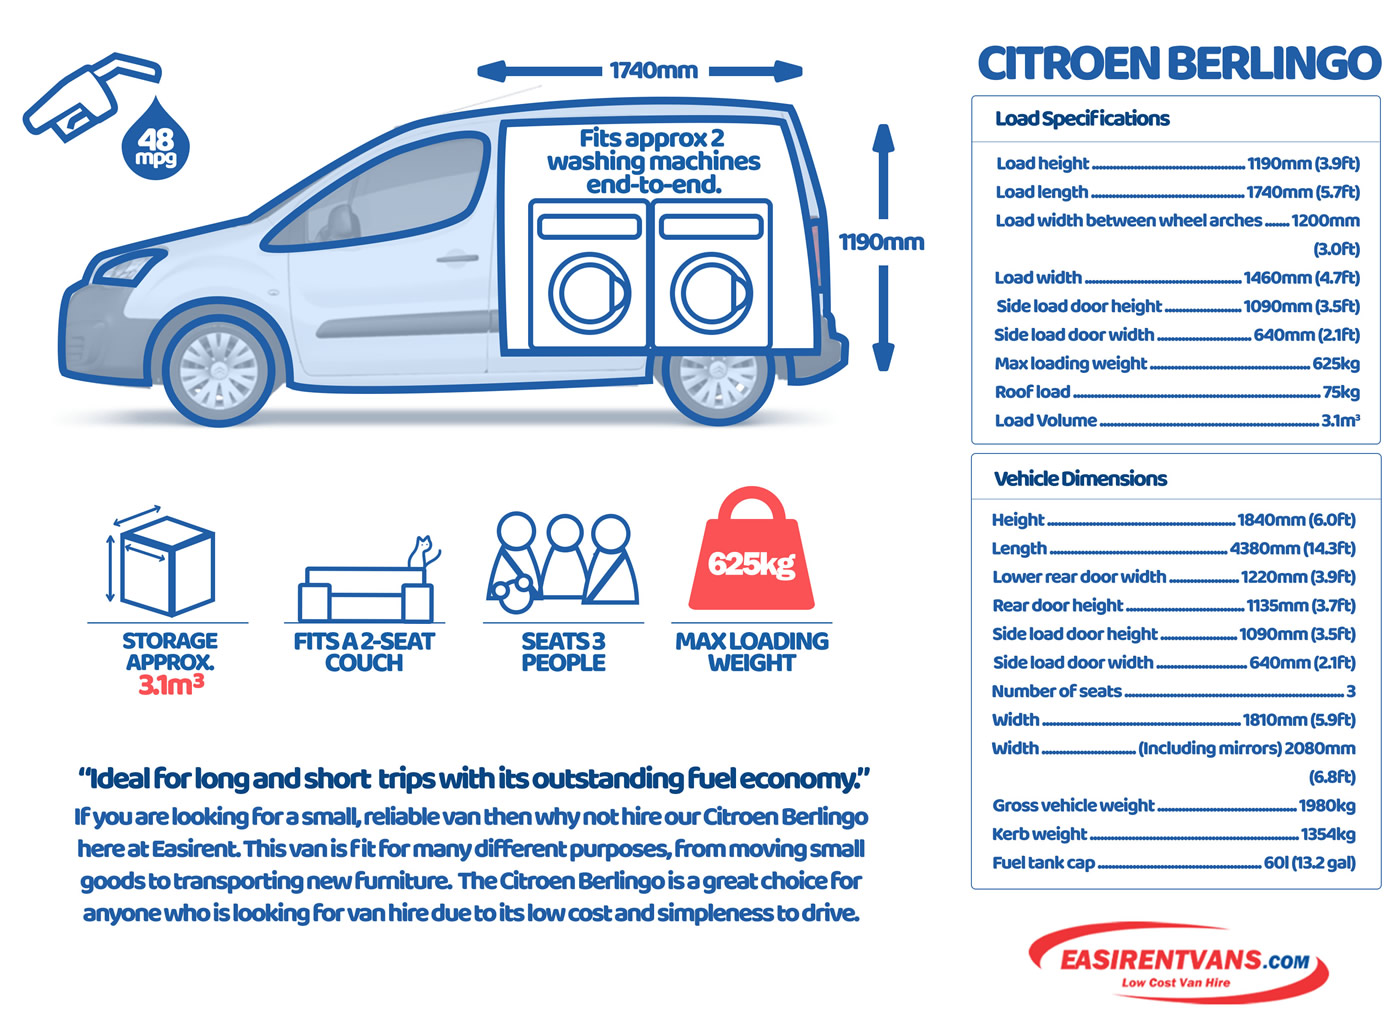 Citroen Berlingo Specs